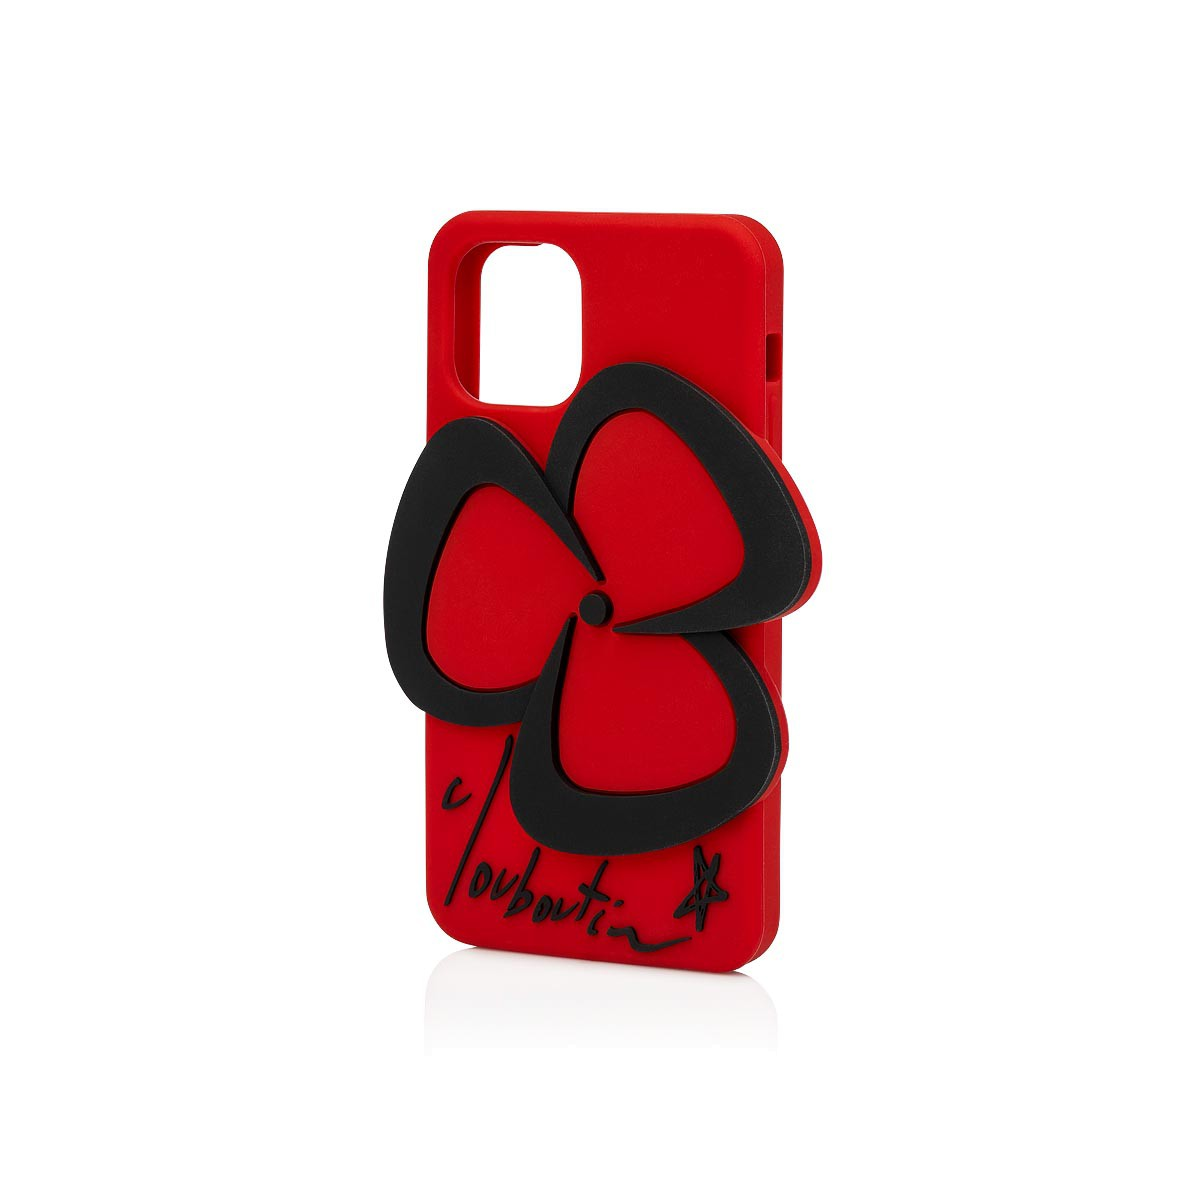 スモールレザーグッズ - Pensée Case Iphone 11 Pro - Christian Louboutin